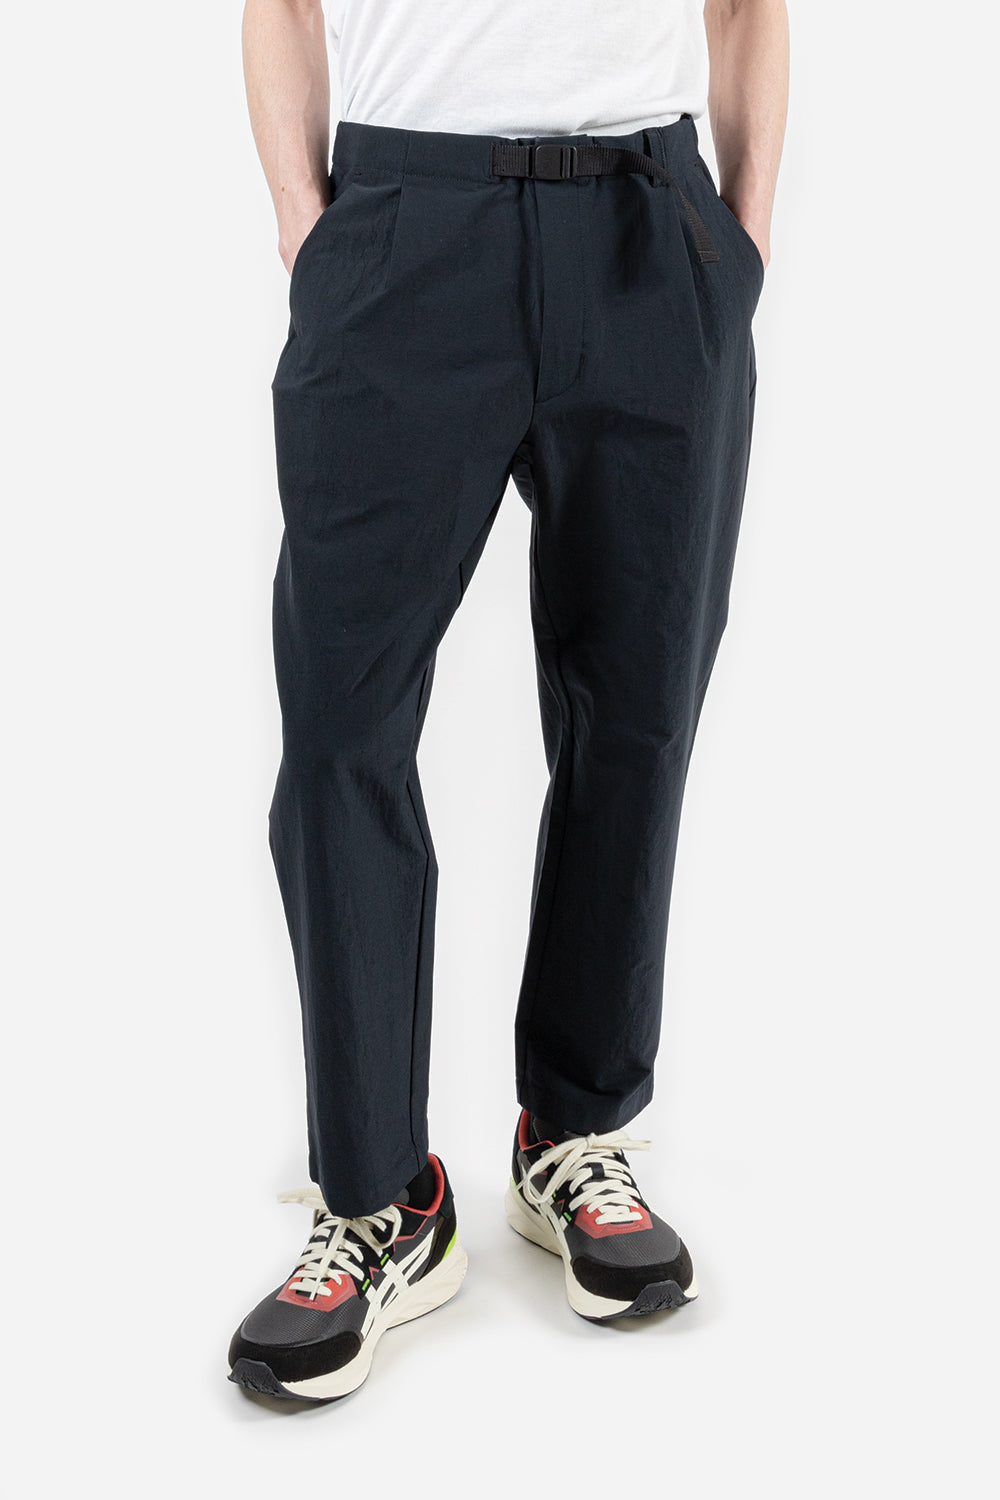 goldwin-one-tuck-tapered-stretch-twill-dark-navy